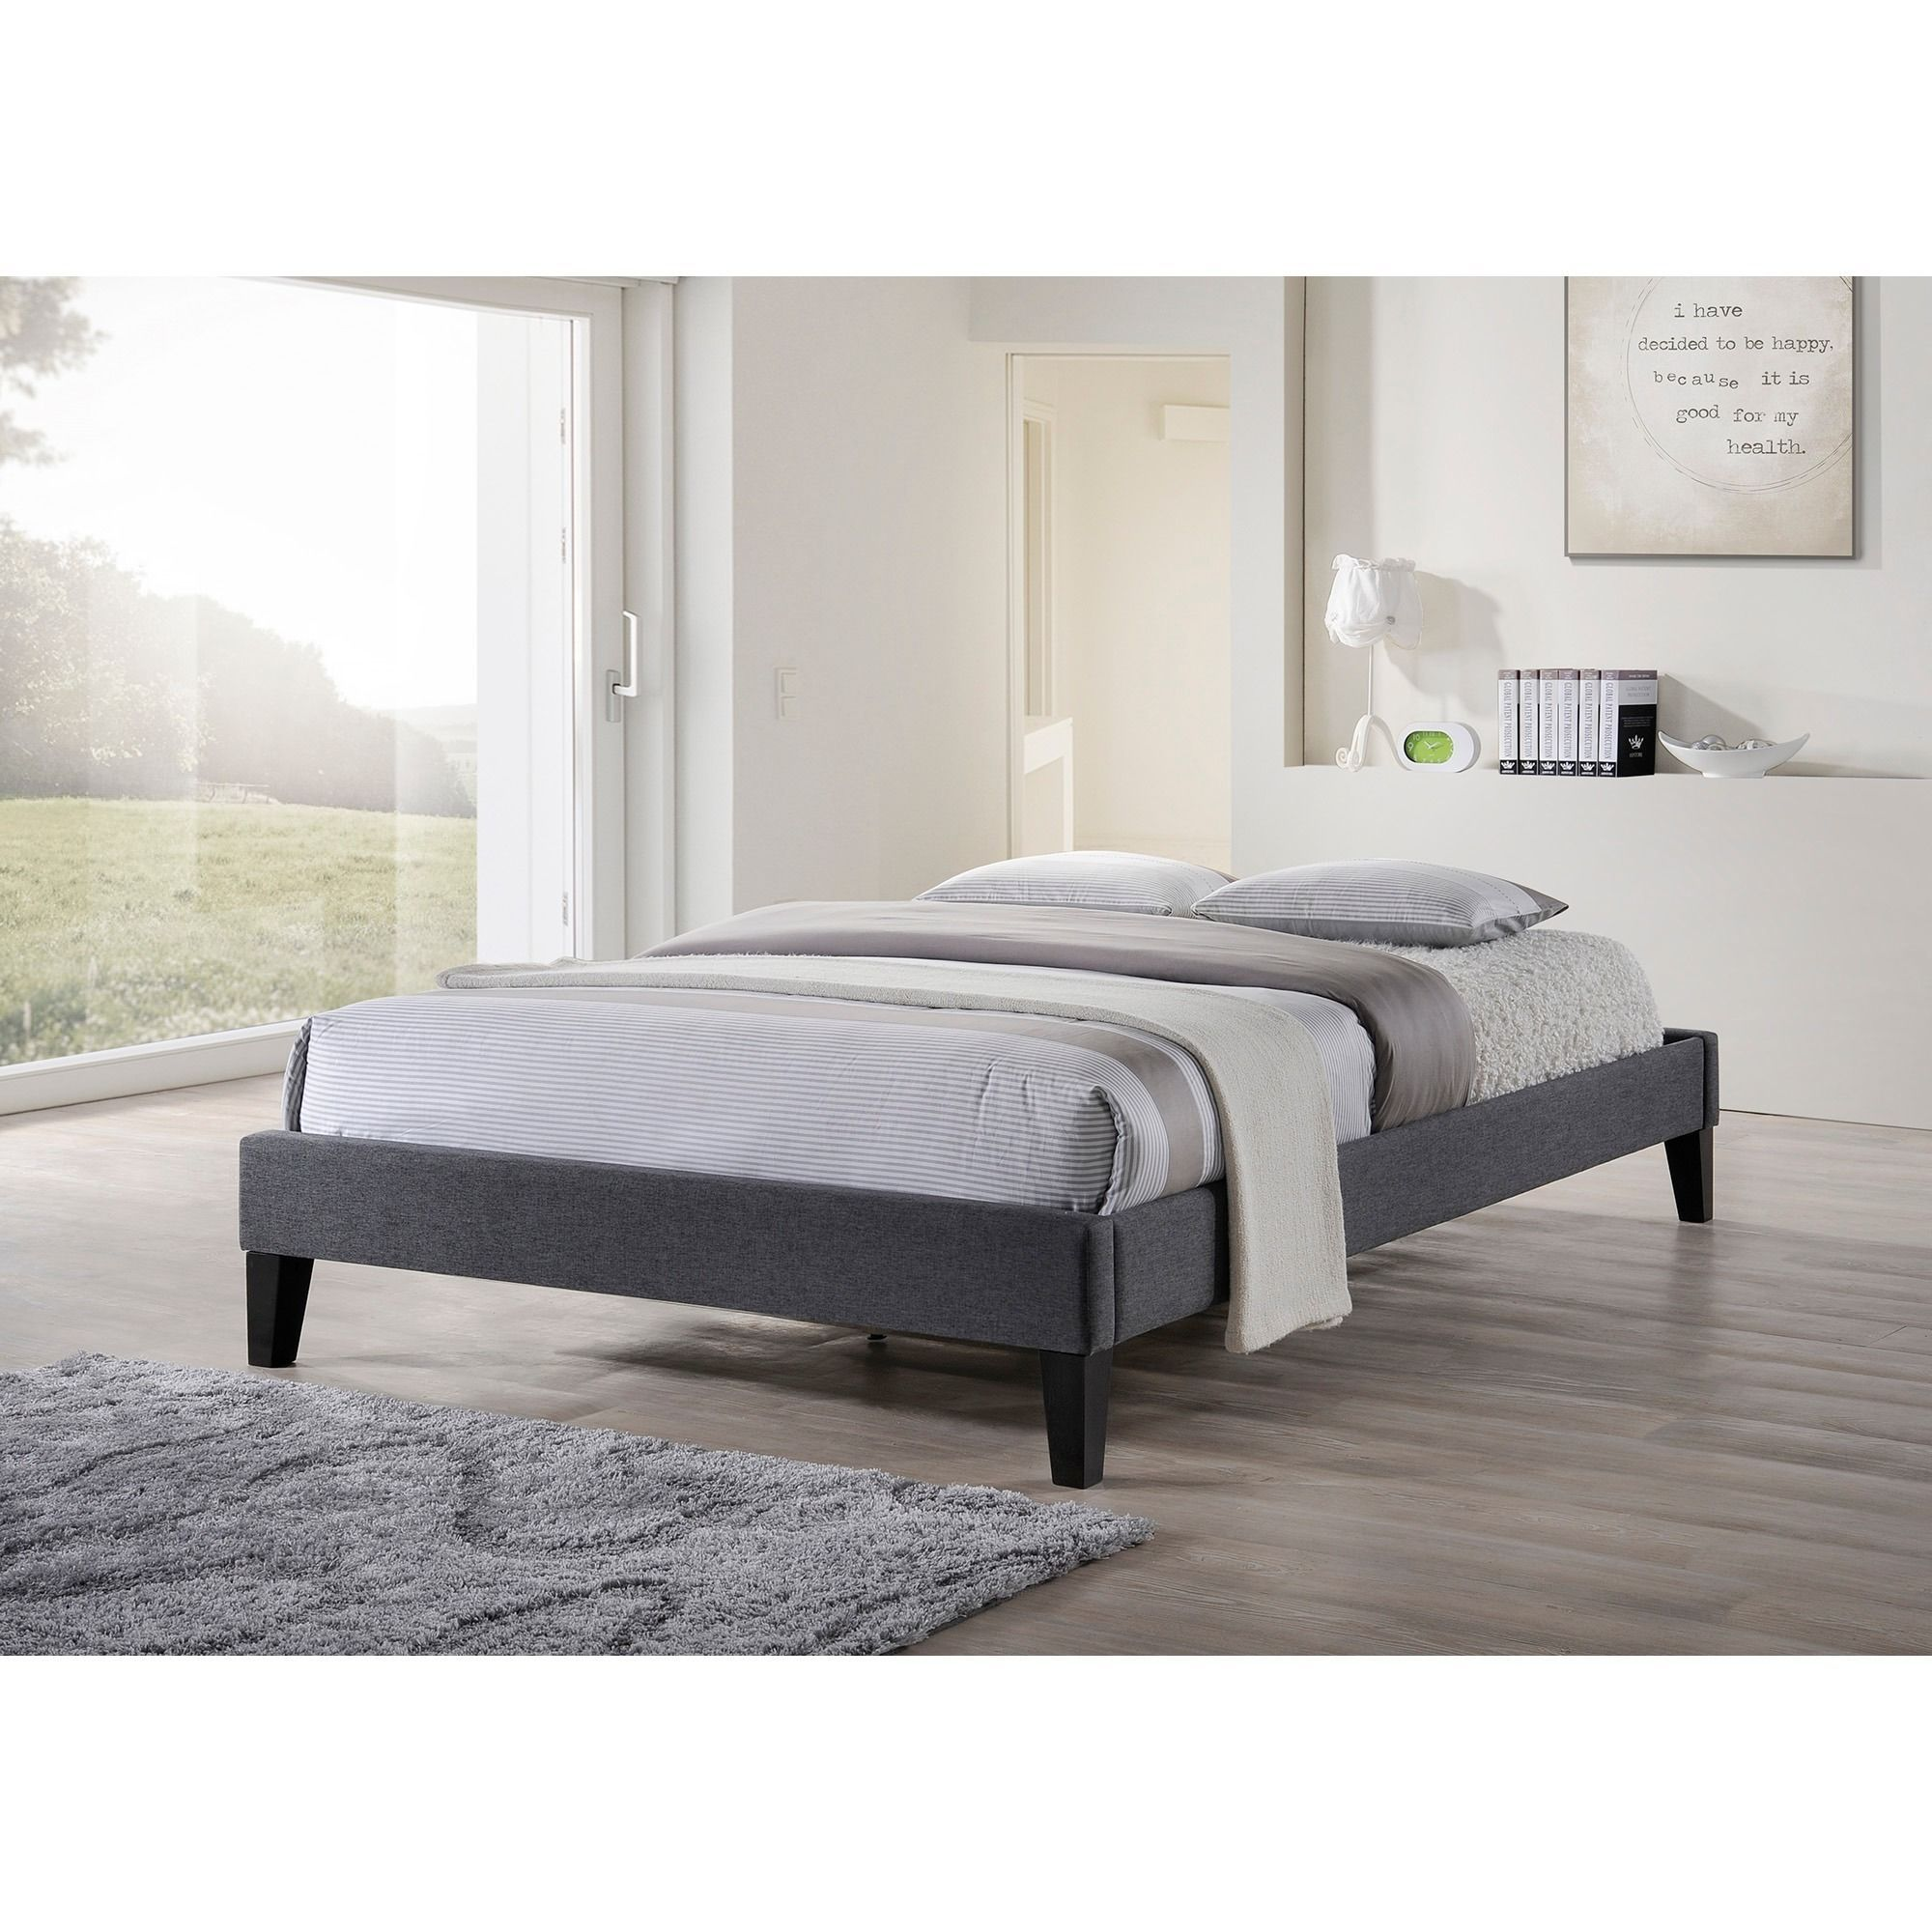 wood sale master italy id at bed frame italian furniture headboard frames f contemporary modern made for collectibles more beds bedroom leather in